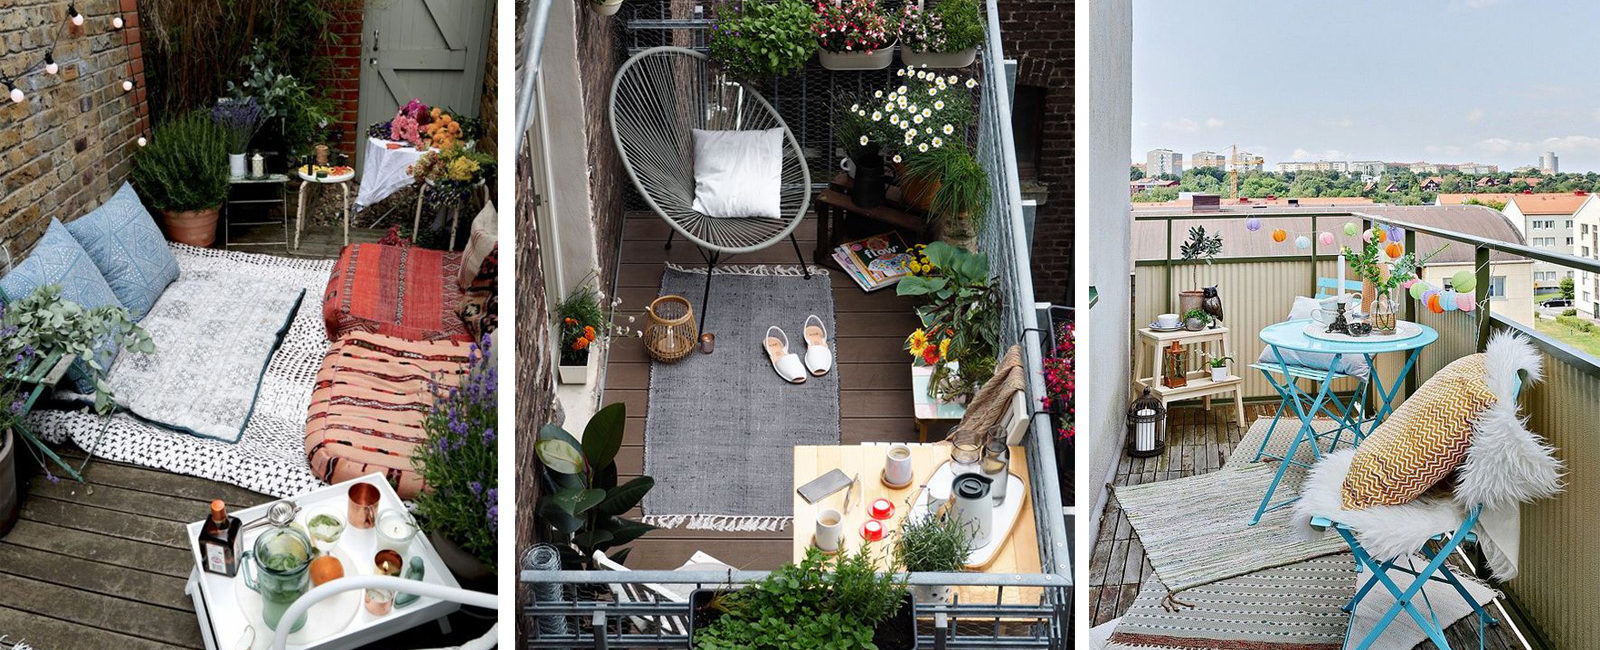 5 tips to decorate and exploit a small balcony